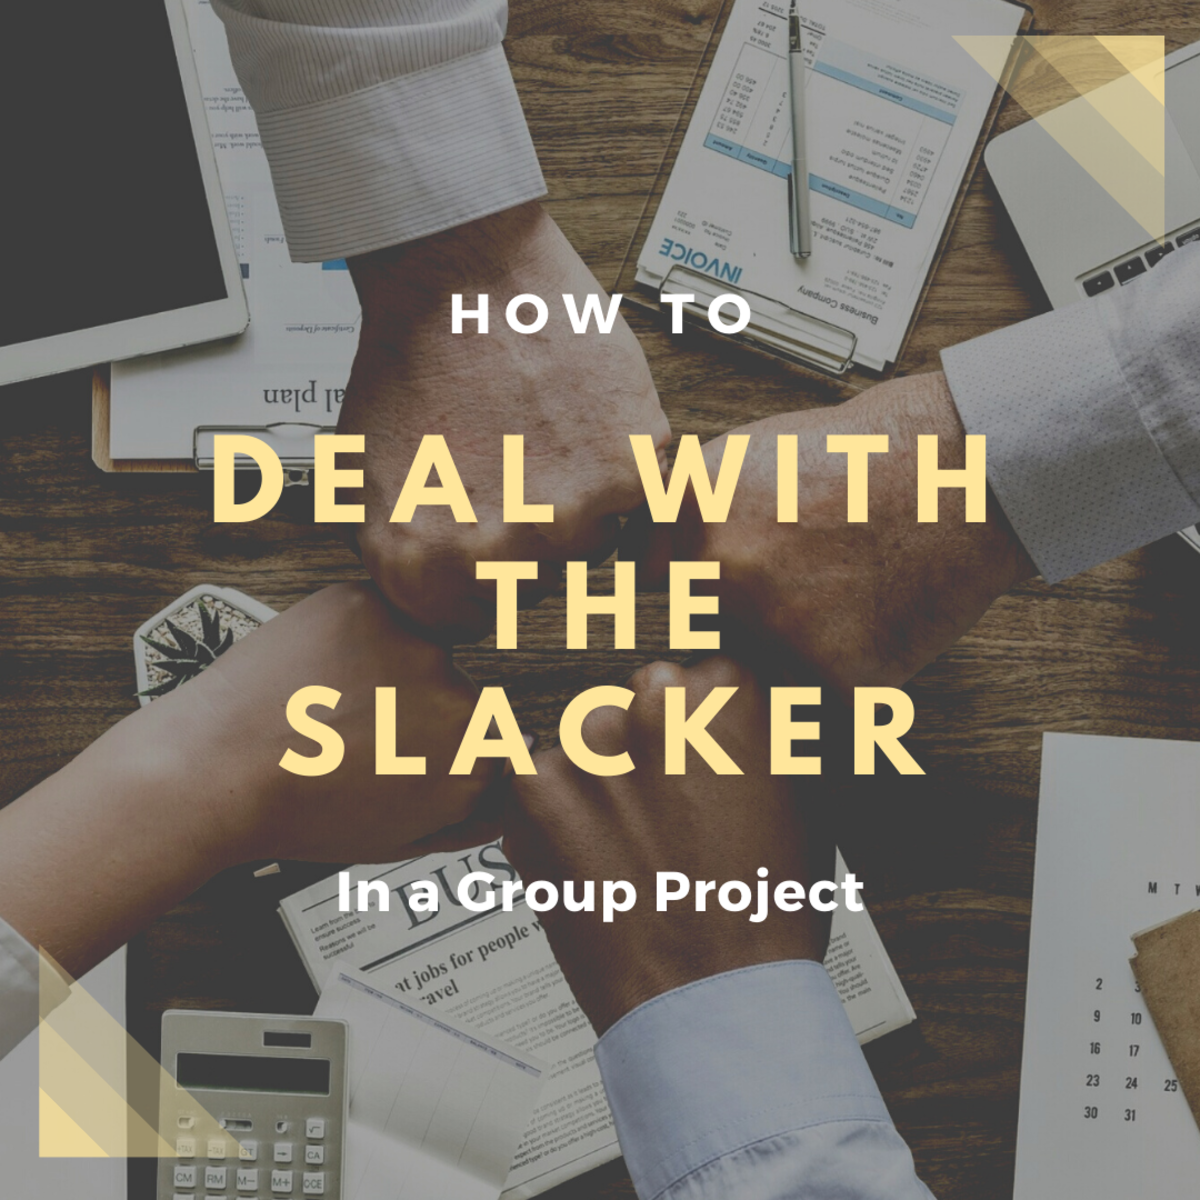 5 Steps to Deal With the Slacker in a Group Project